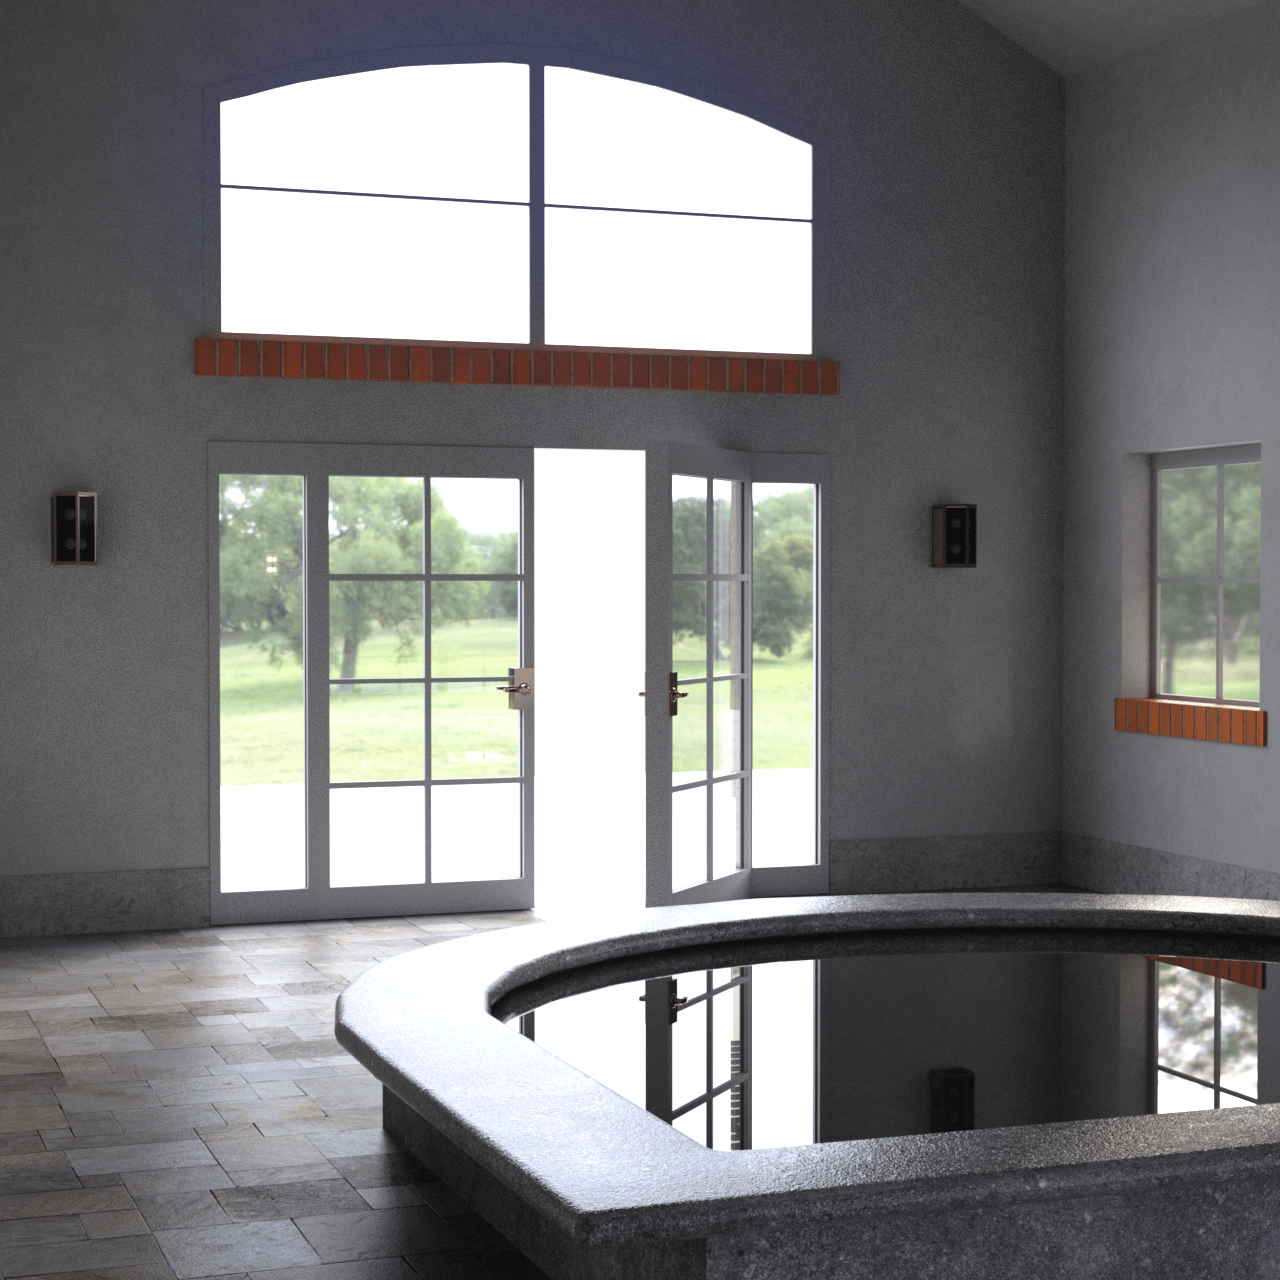 Close up of the exit doors and jacuzzi